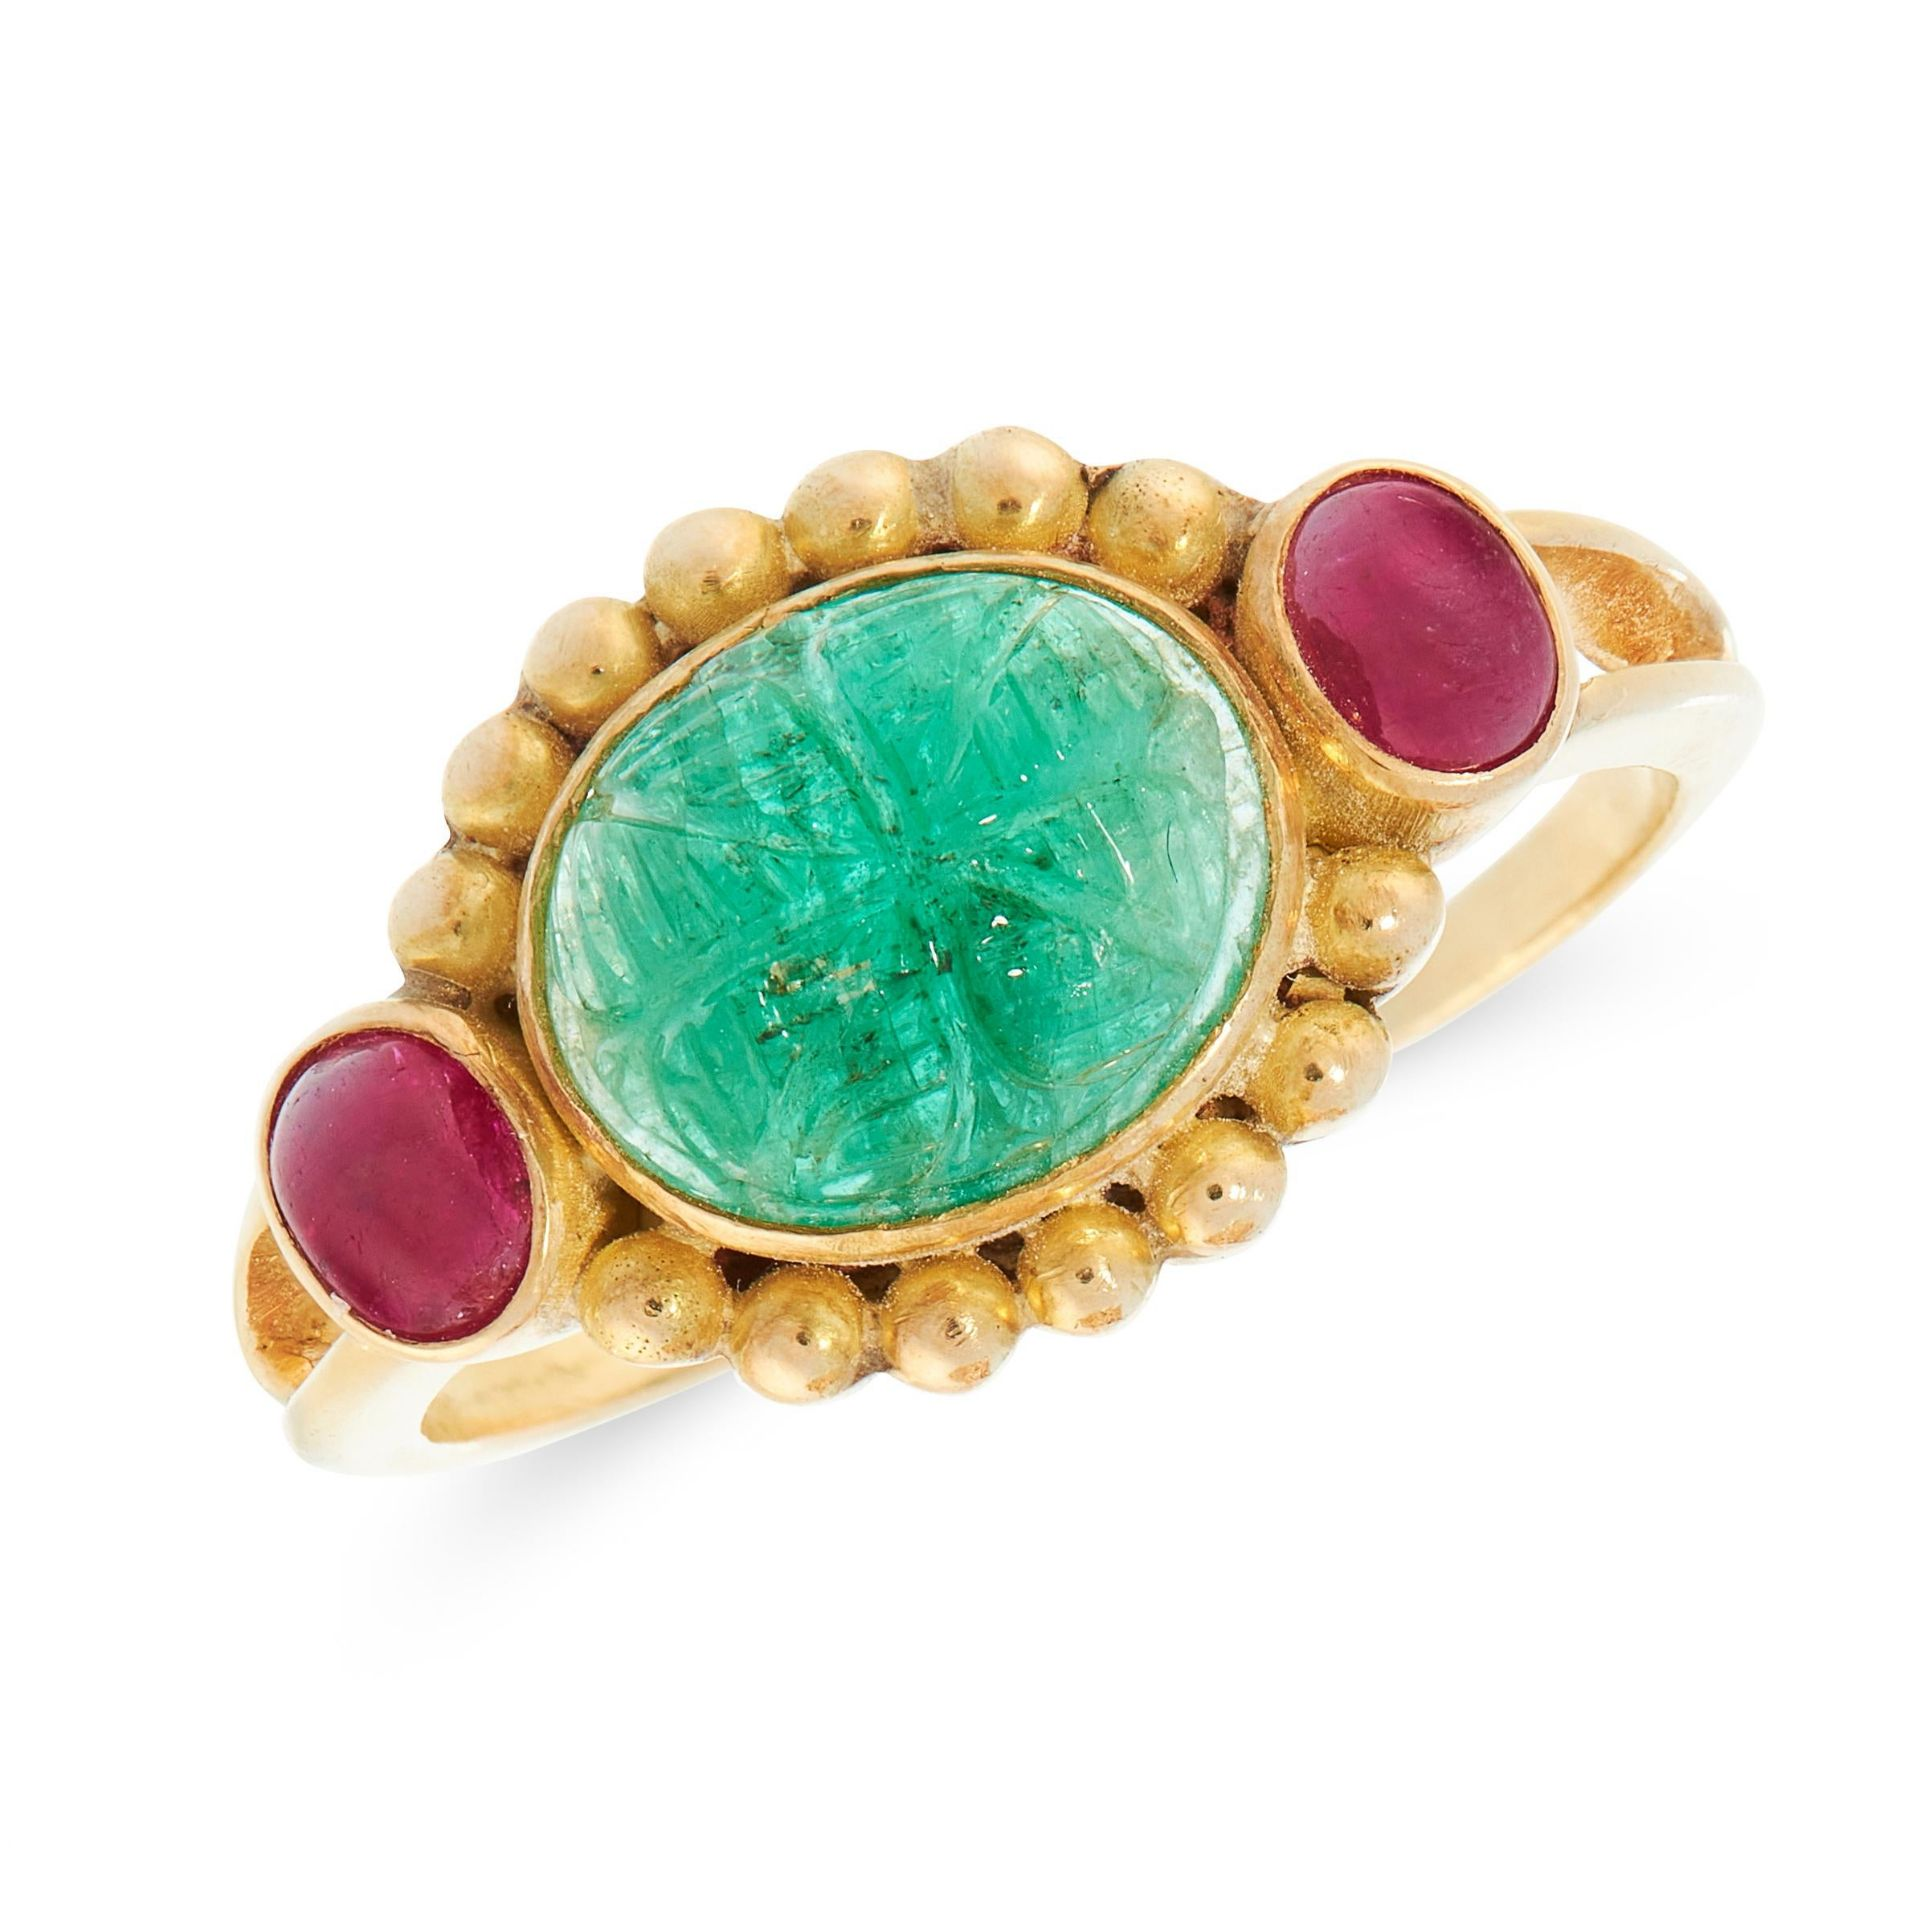 A MUGHAL CARVED EMERALD AND RUBY DRESS RING in 18ct yellow gold, set with an oval cabochon emerald